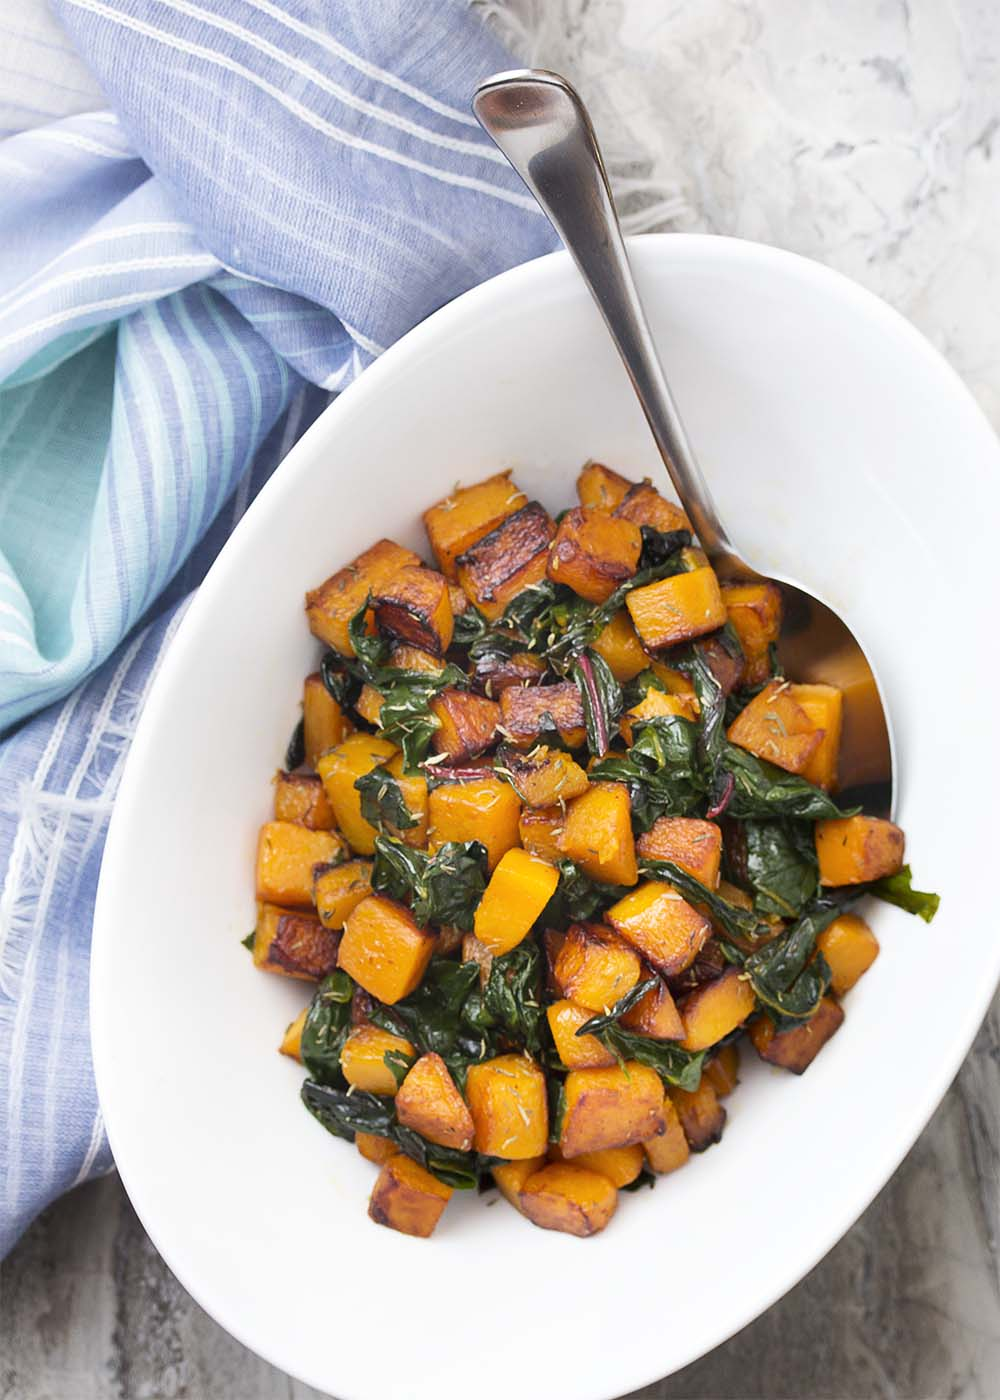 Top view of the sauteed squash and chard in a white serving bowl.